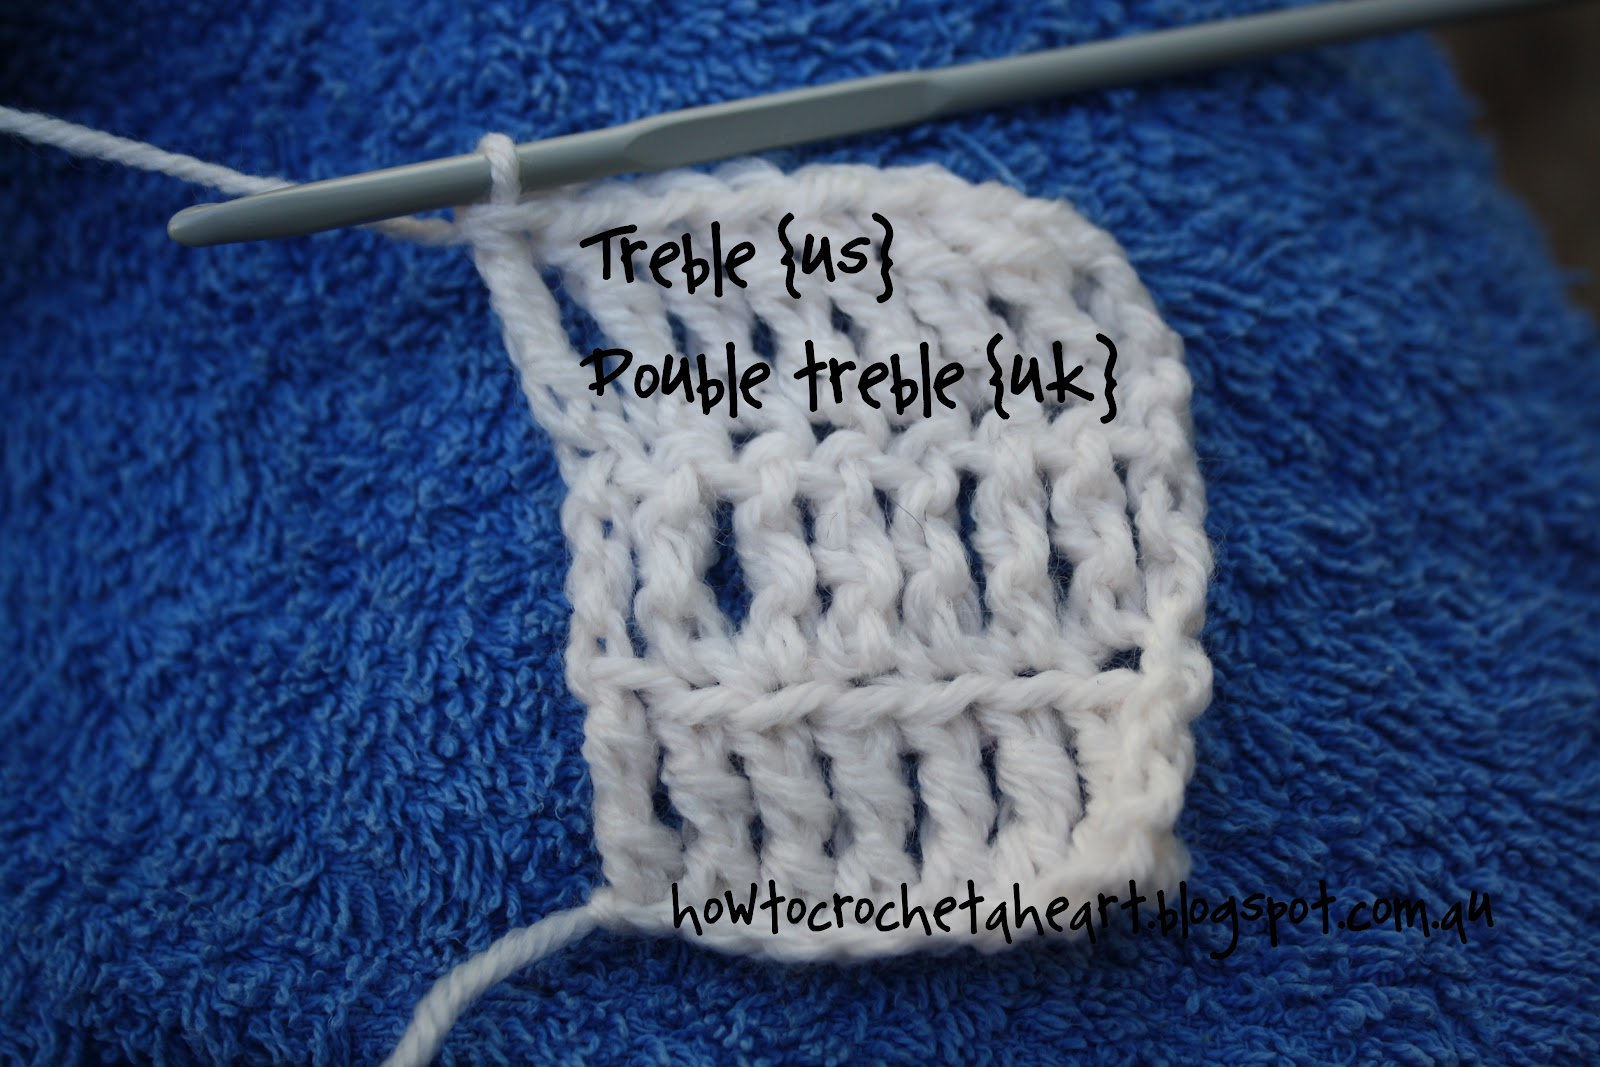 Crochet Stitches Uk Treble : How To Crochet a Heart: {crochet basics} Treble Crochet /Double Treble ...